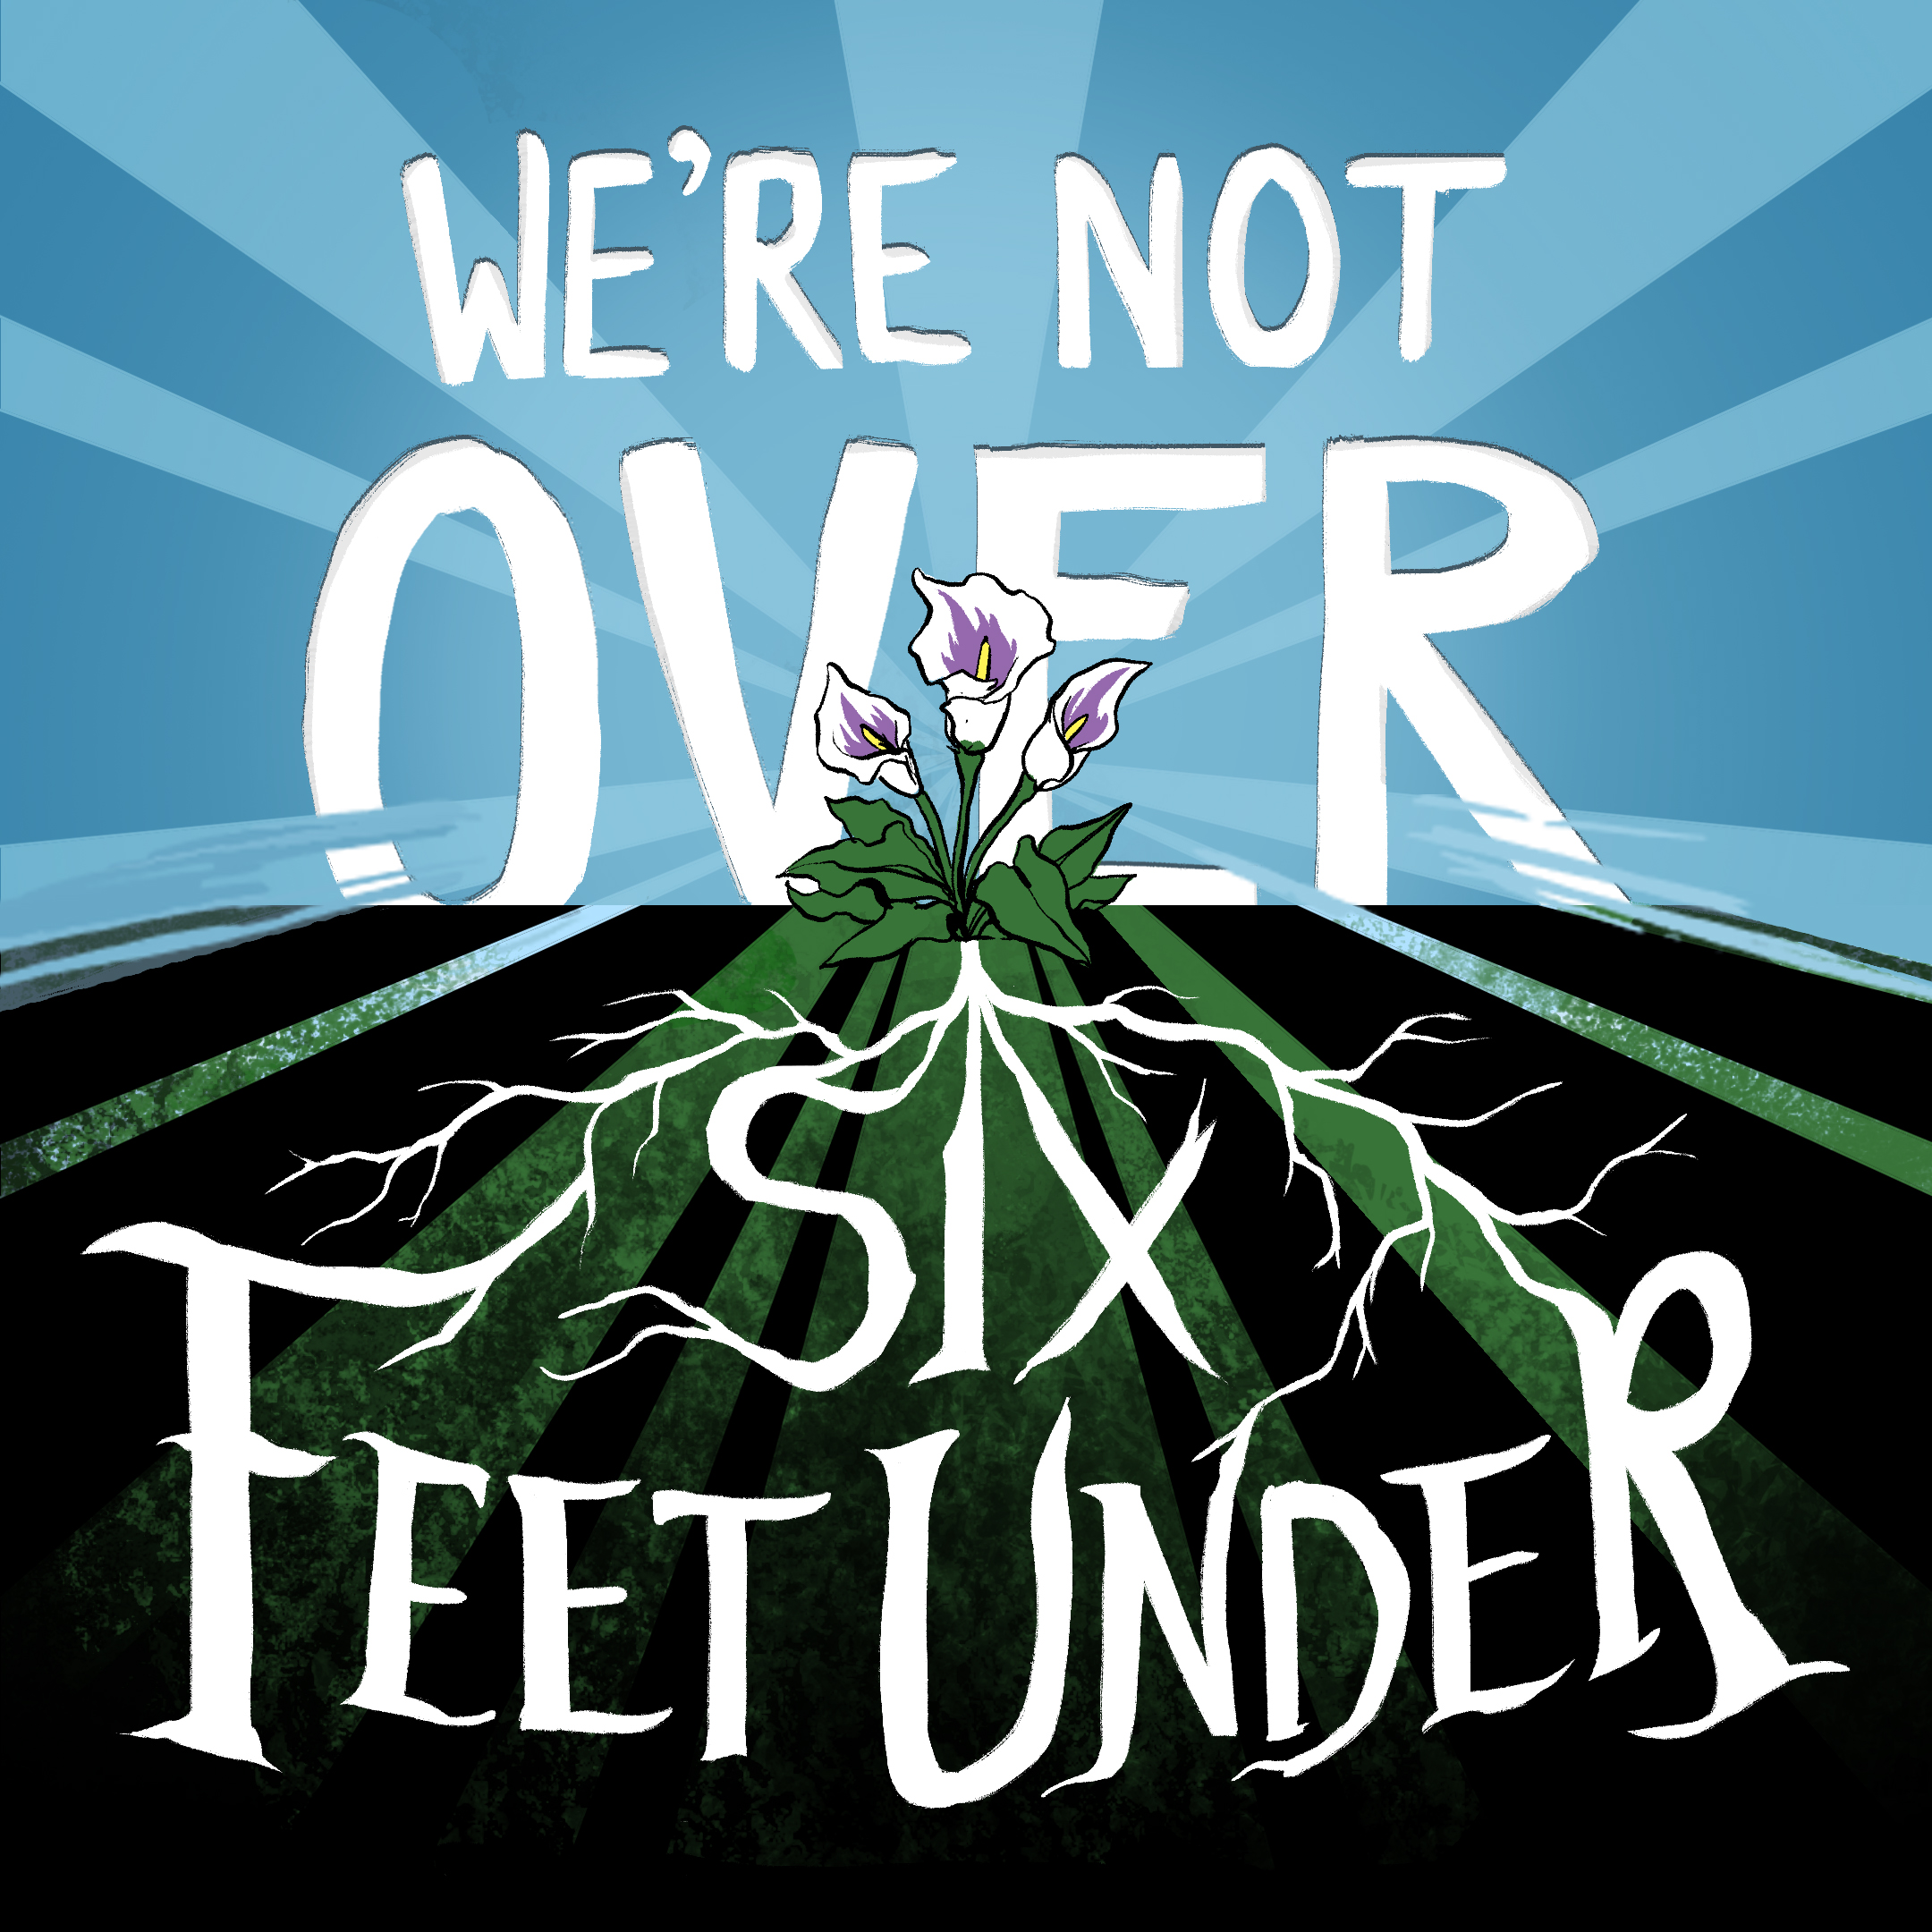 We're Not Over Six Feet Under